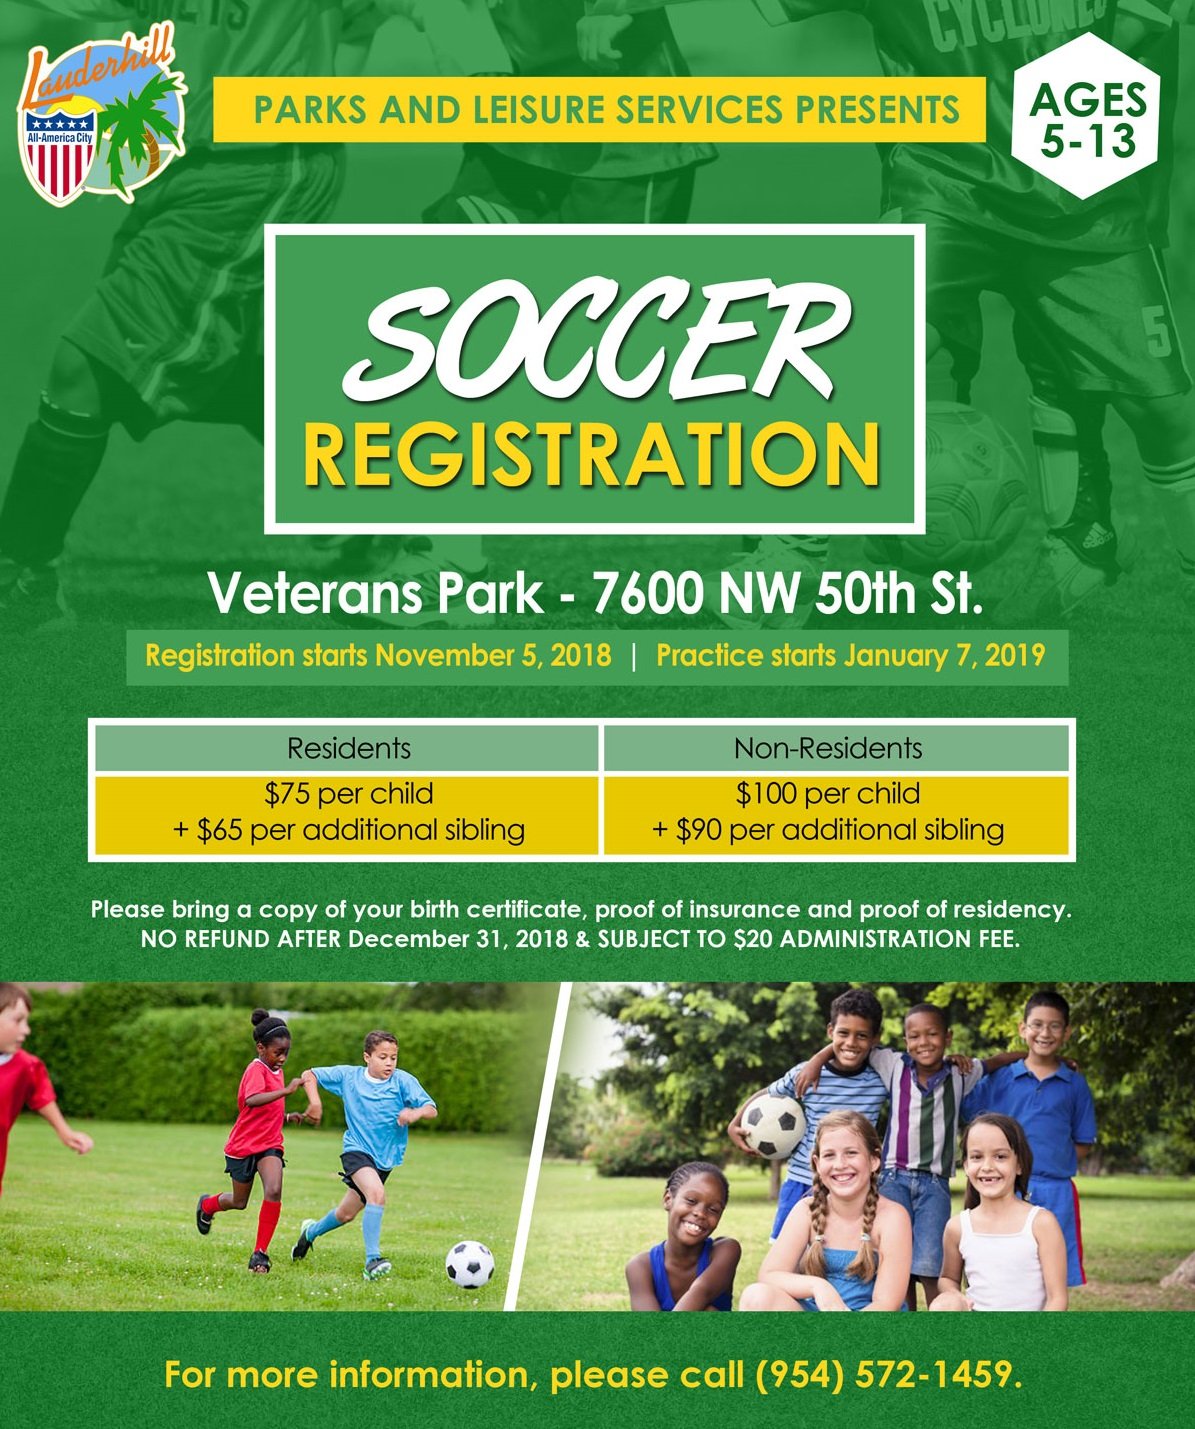 Youth Soccer Recreation Registration